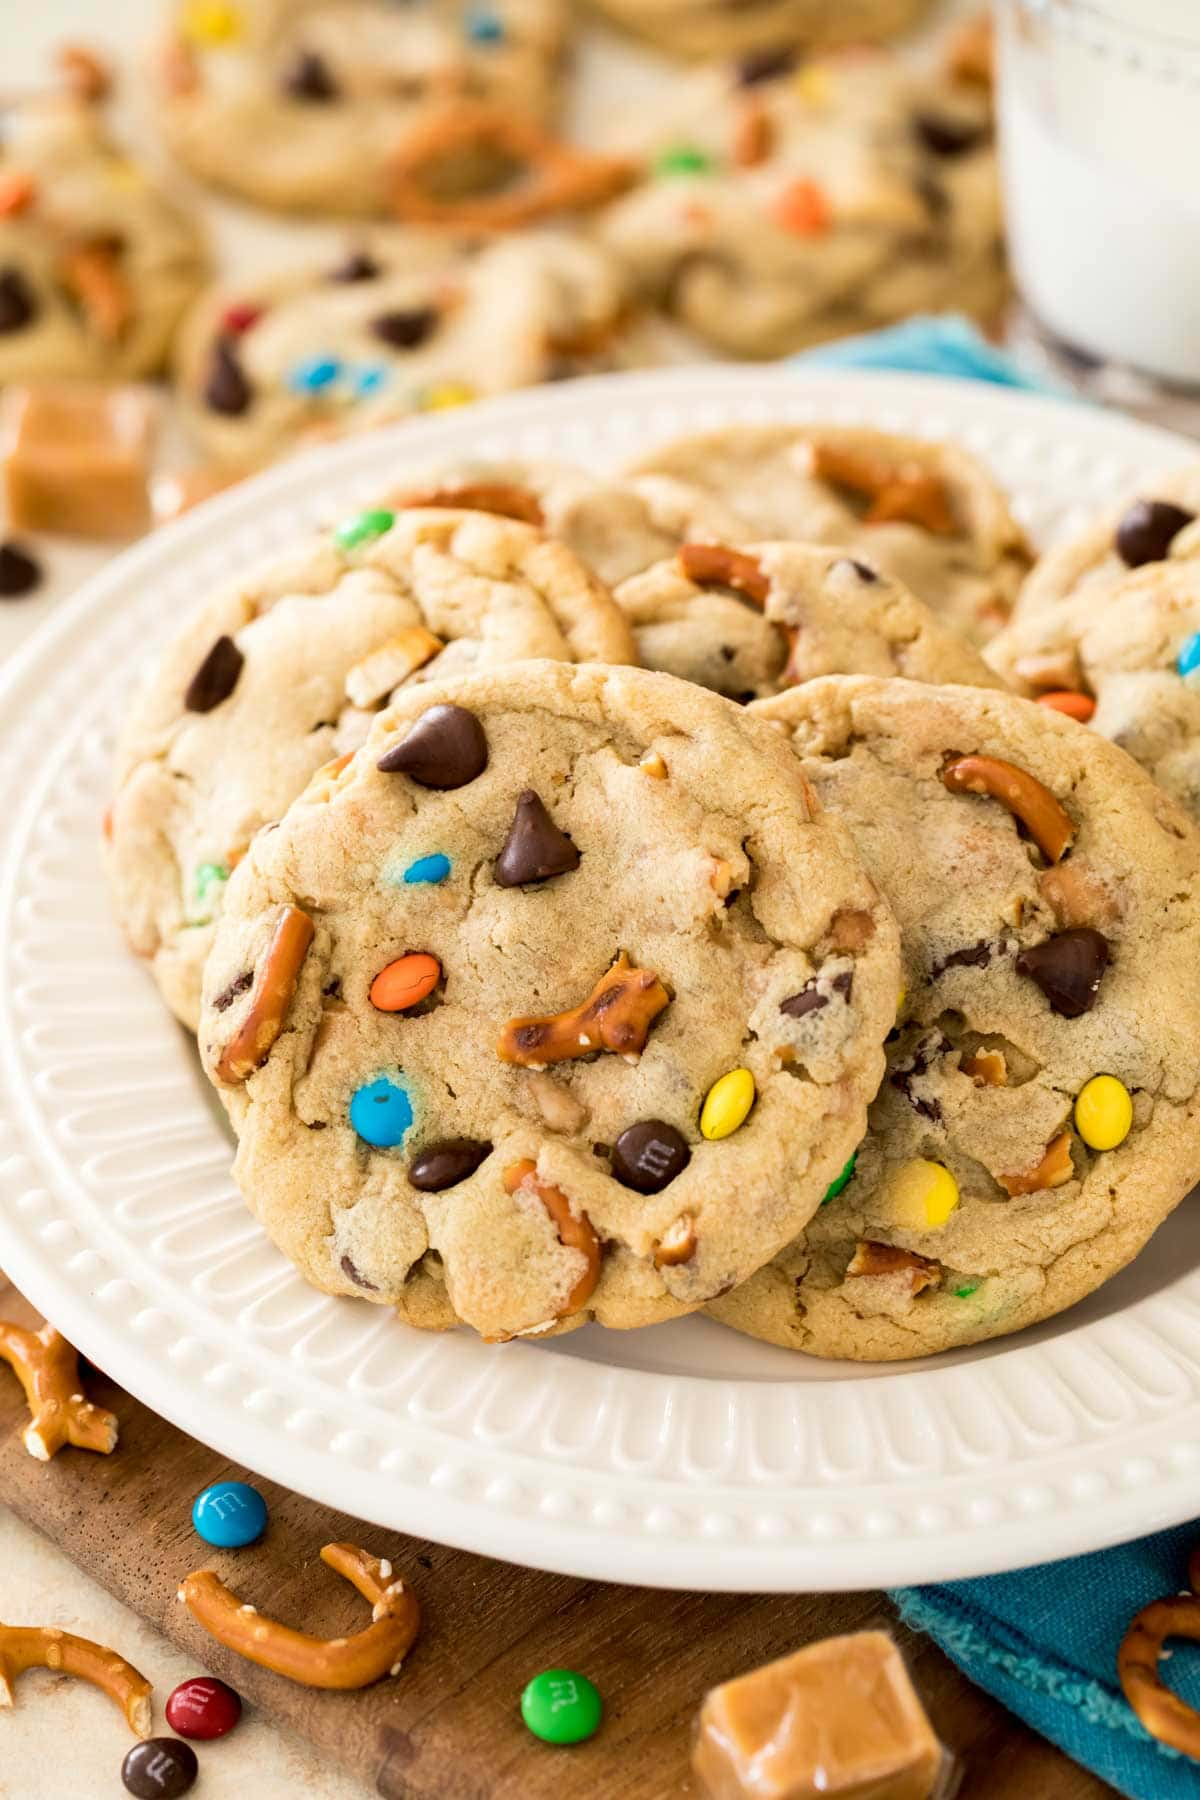 Love Cookies? You'll Enjoy These 10 Yummy Cookie Recipes From Sugar Spun Run